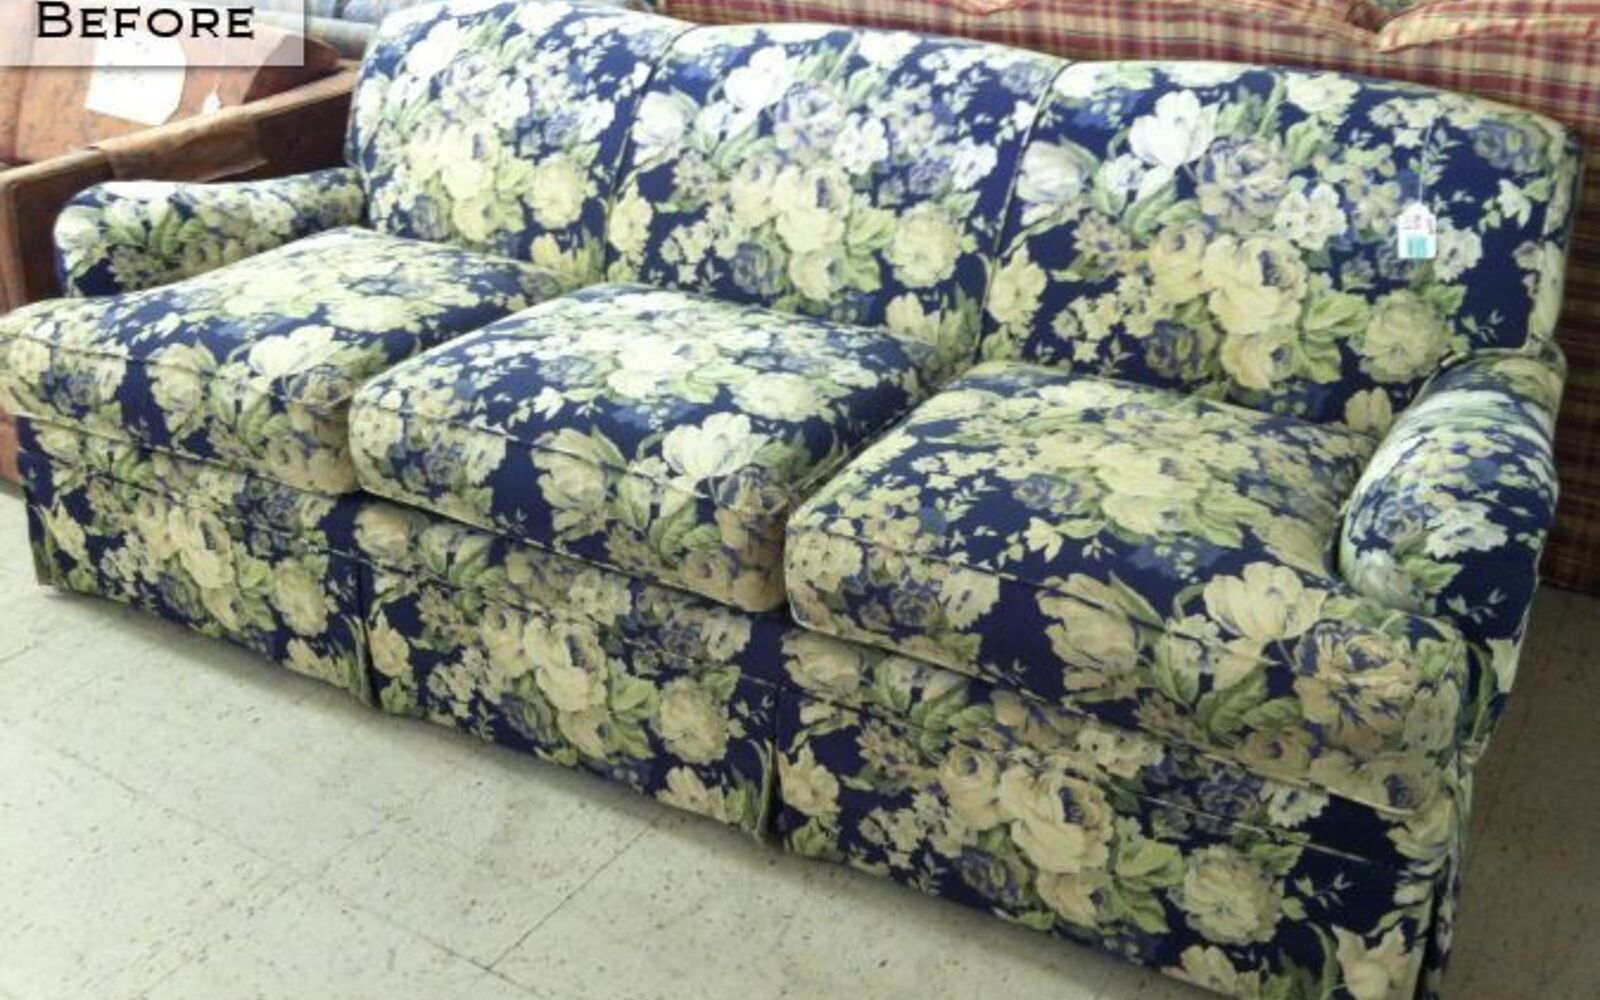 s hide your couch s wear and tear with these great ideas, Painted and upholstered sofa